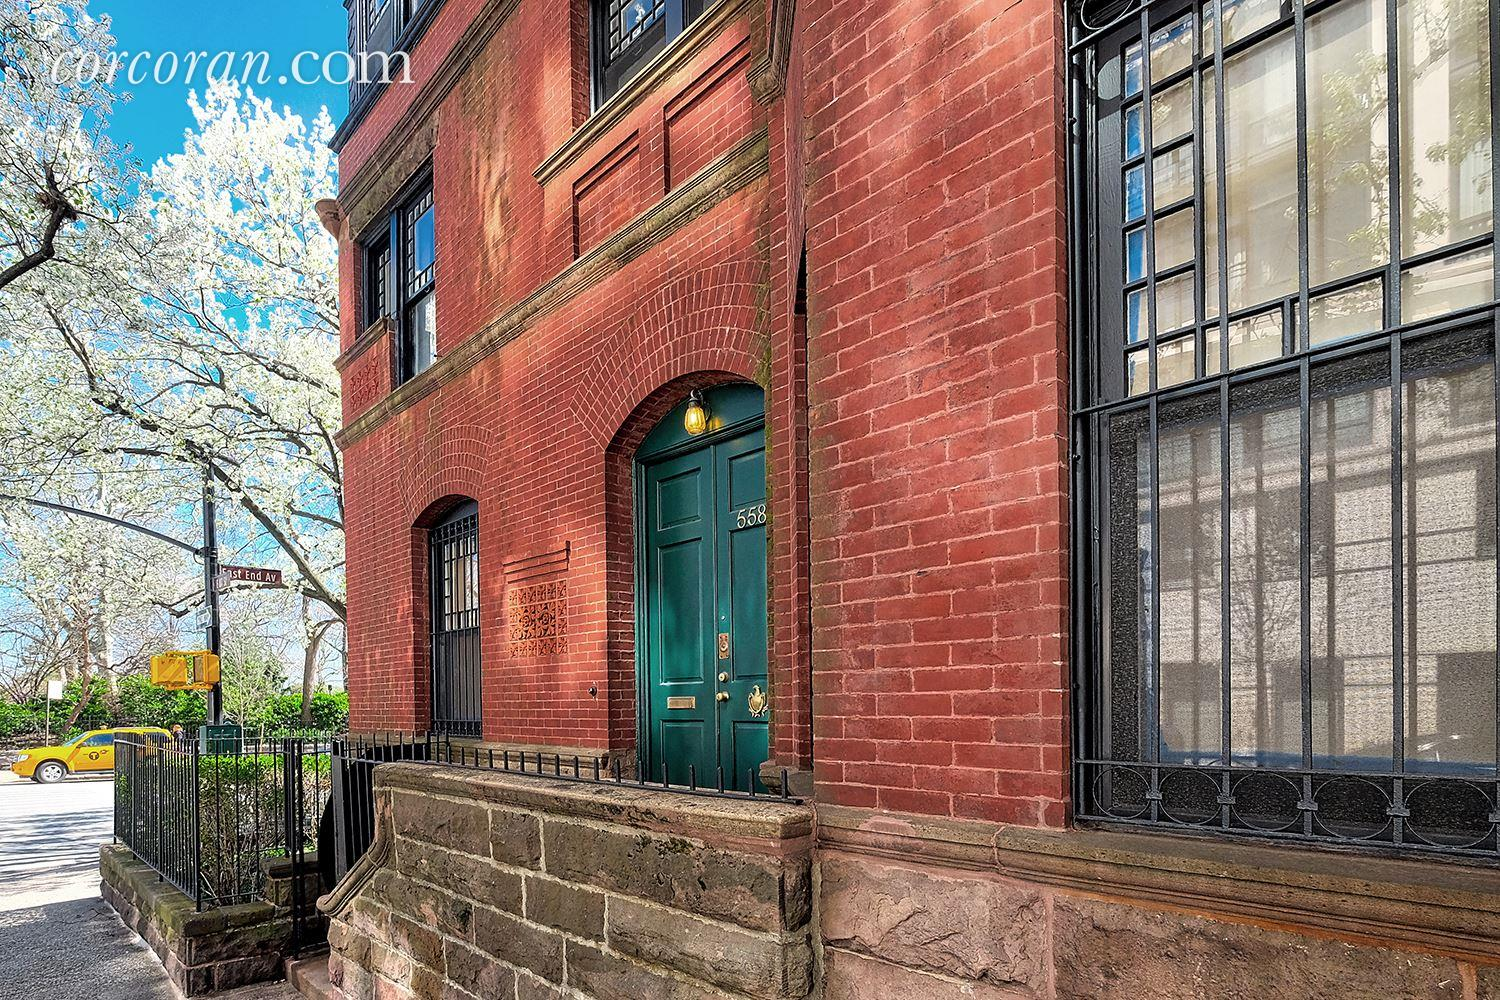 Harriet the Spys Upper East Side Townhouse Hits the